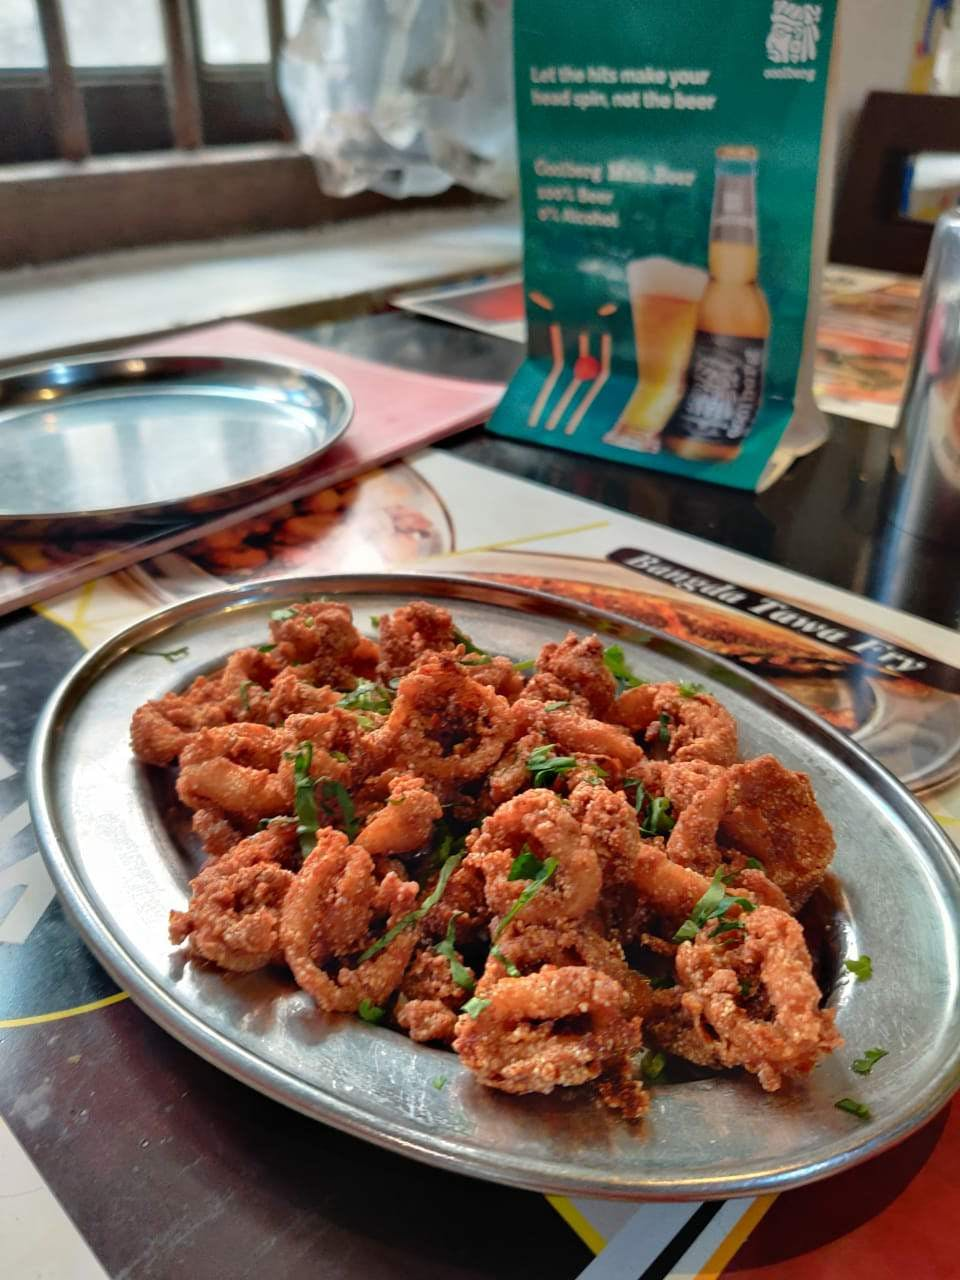 Dish,Food,Cuisine,Ingredient,Fried food,Meat,Produce,Recipe,General tso's chicken,Sesame chicken